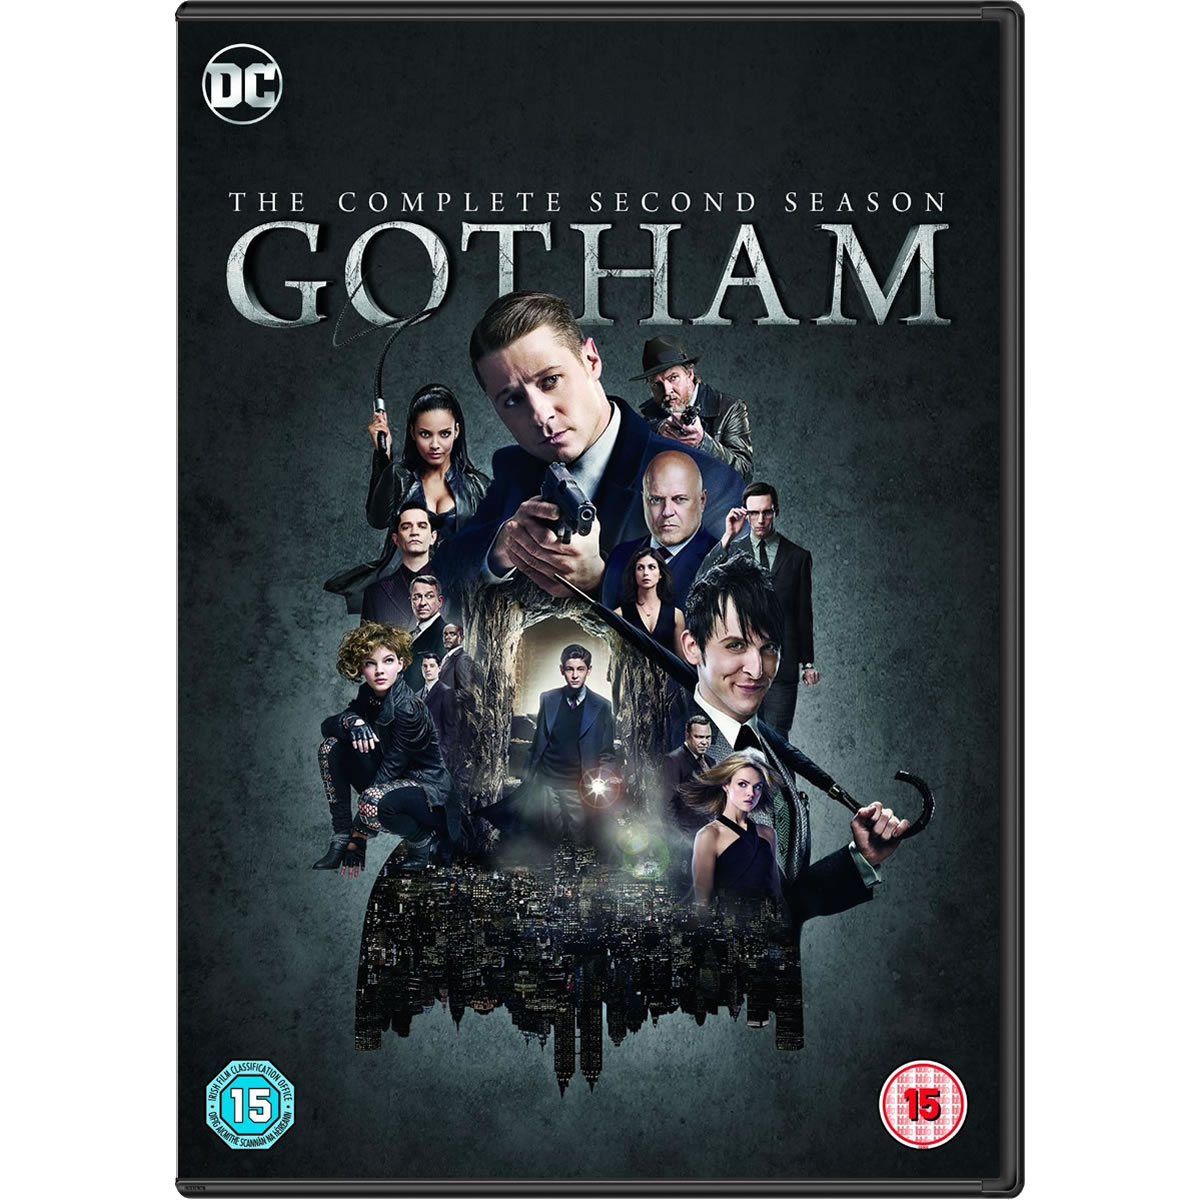 GOTHAM: THE COMPLETE 2nd SEASON - GOTHAM: 2ος ΚΥΚΛΟΣ (6 DVDs)